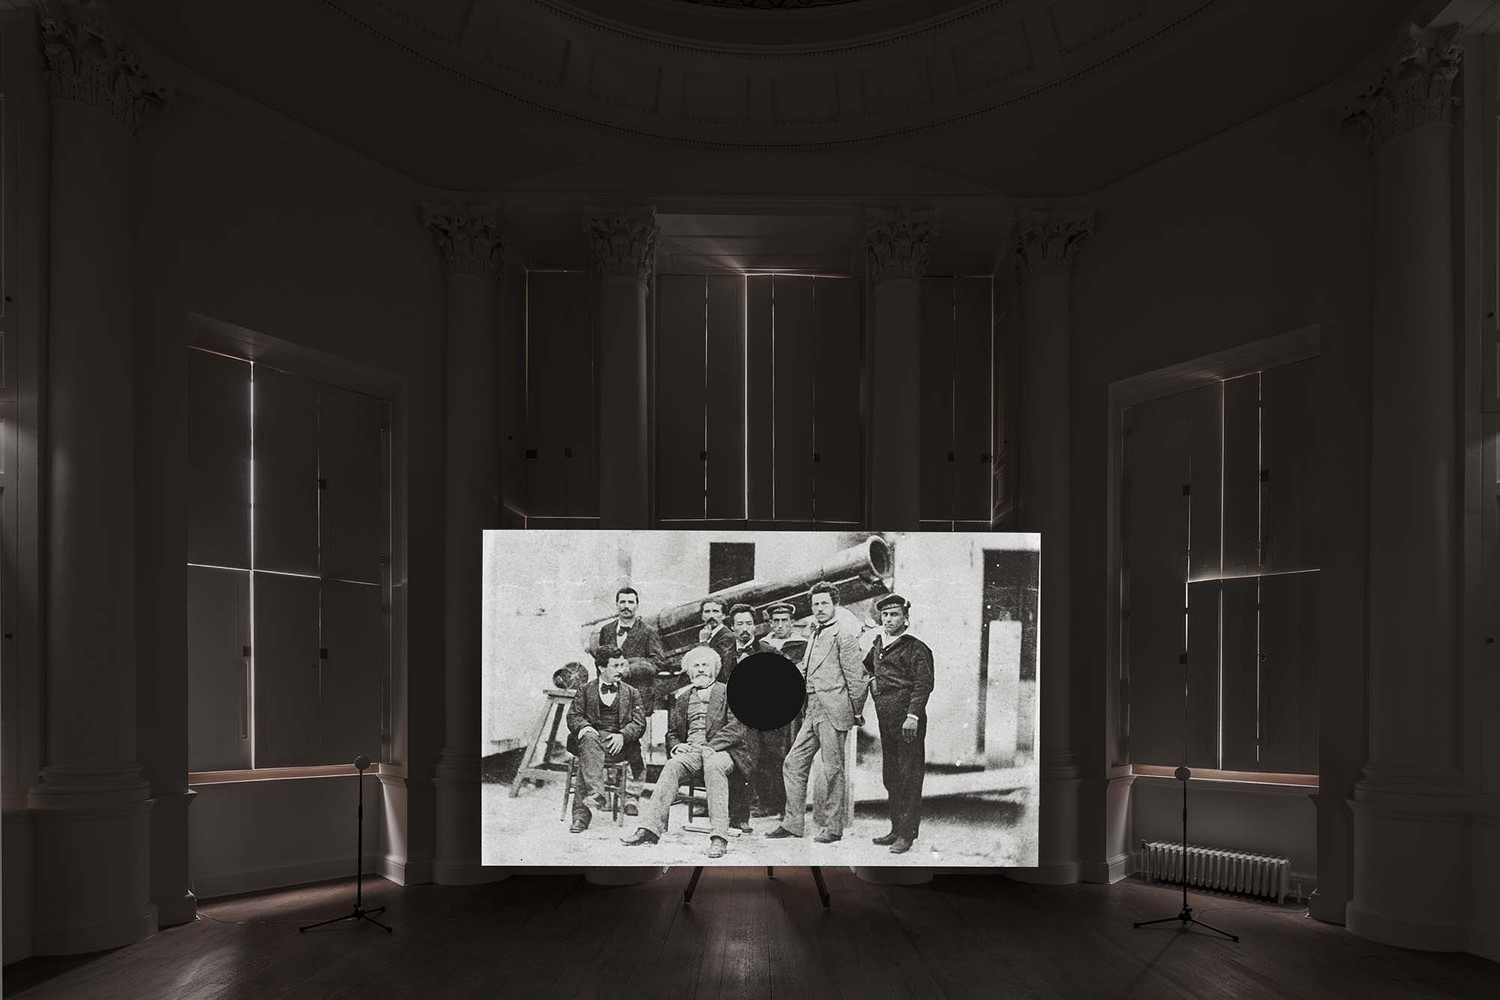 Installation view, Radcliffe Observatory, Oxford